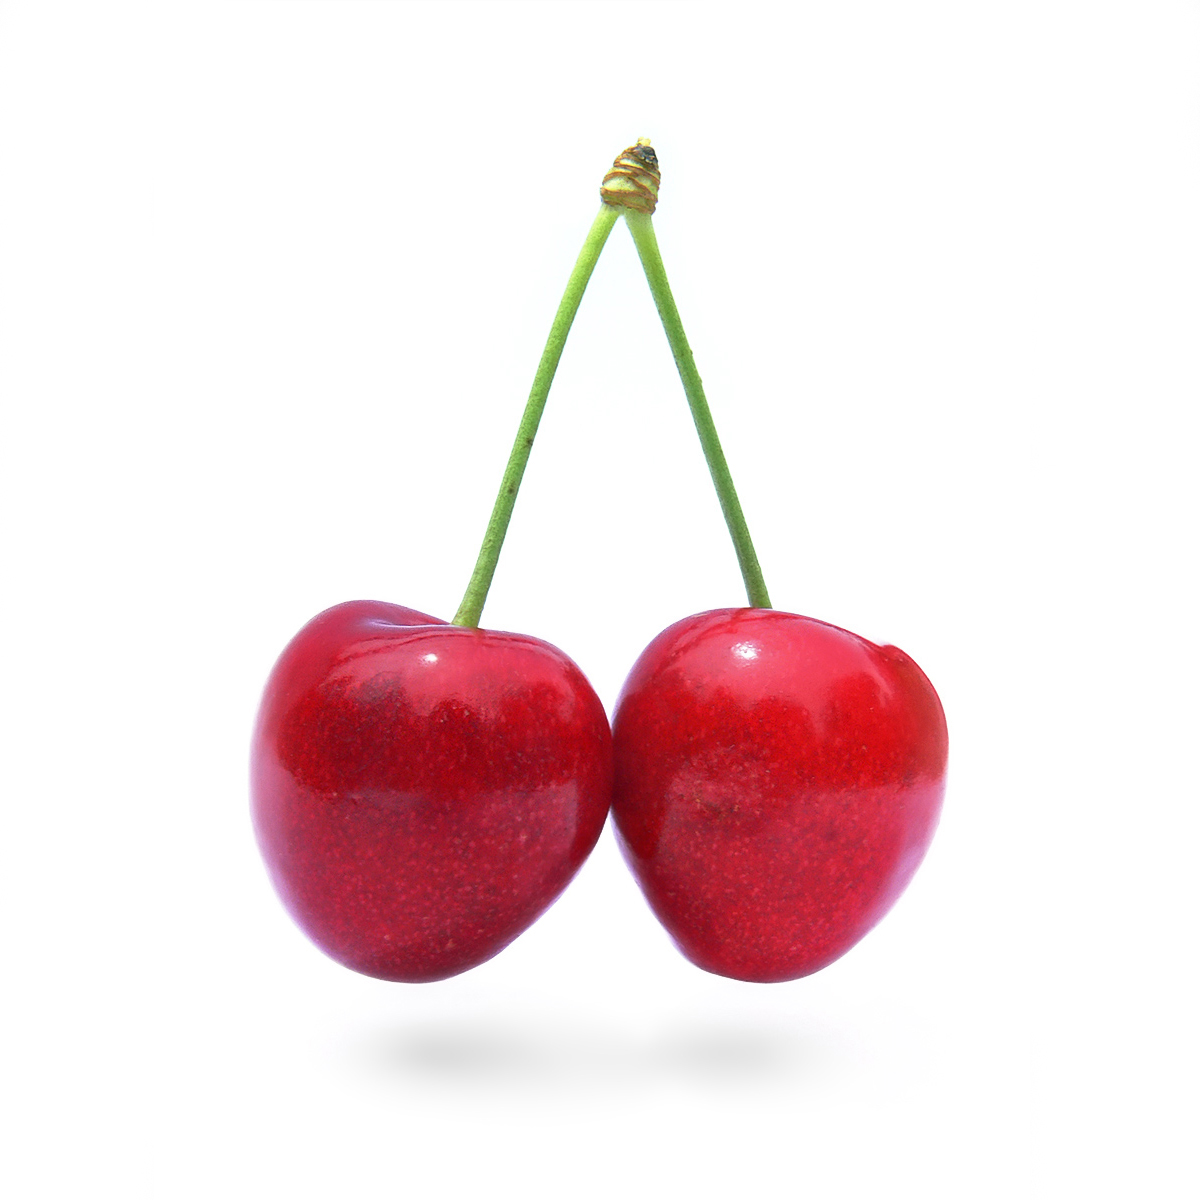 Images of Cherry | 1200x1200